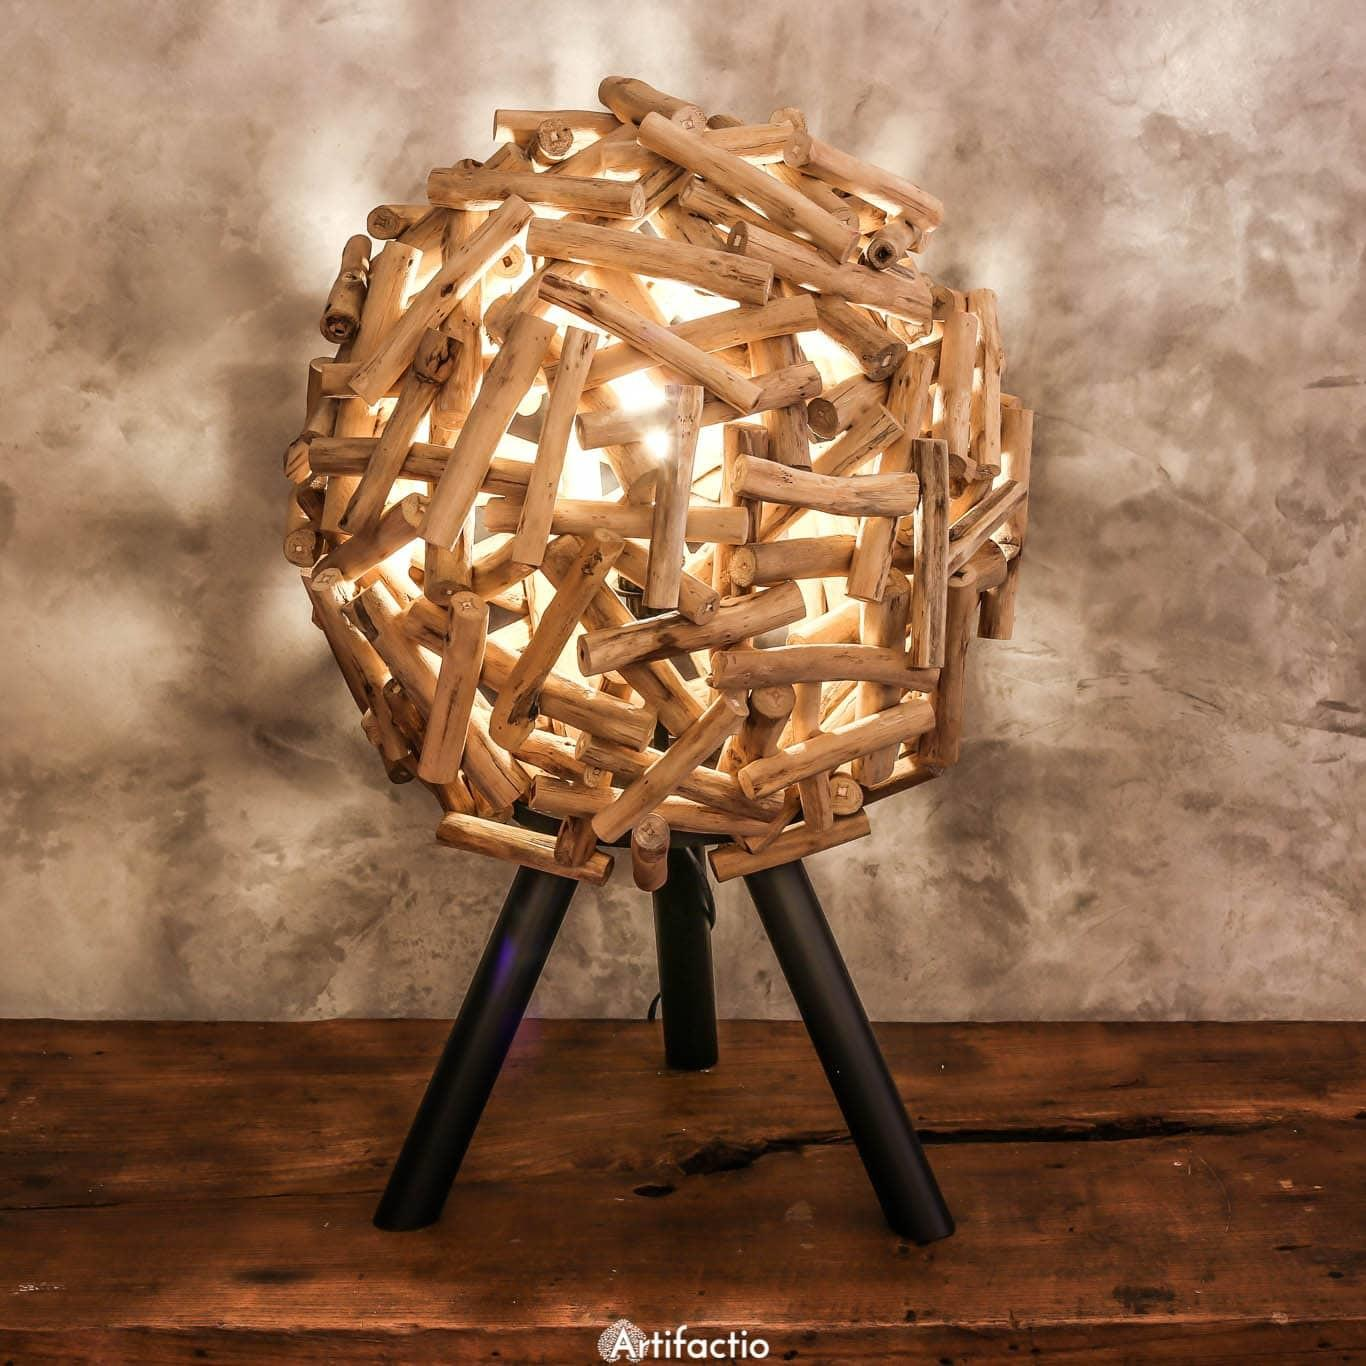 Unique Handmade Driftwood Table Lamp Artifactio